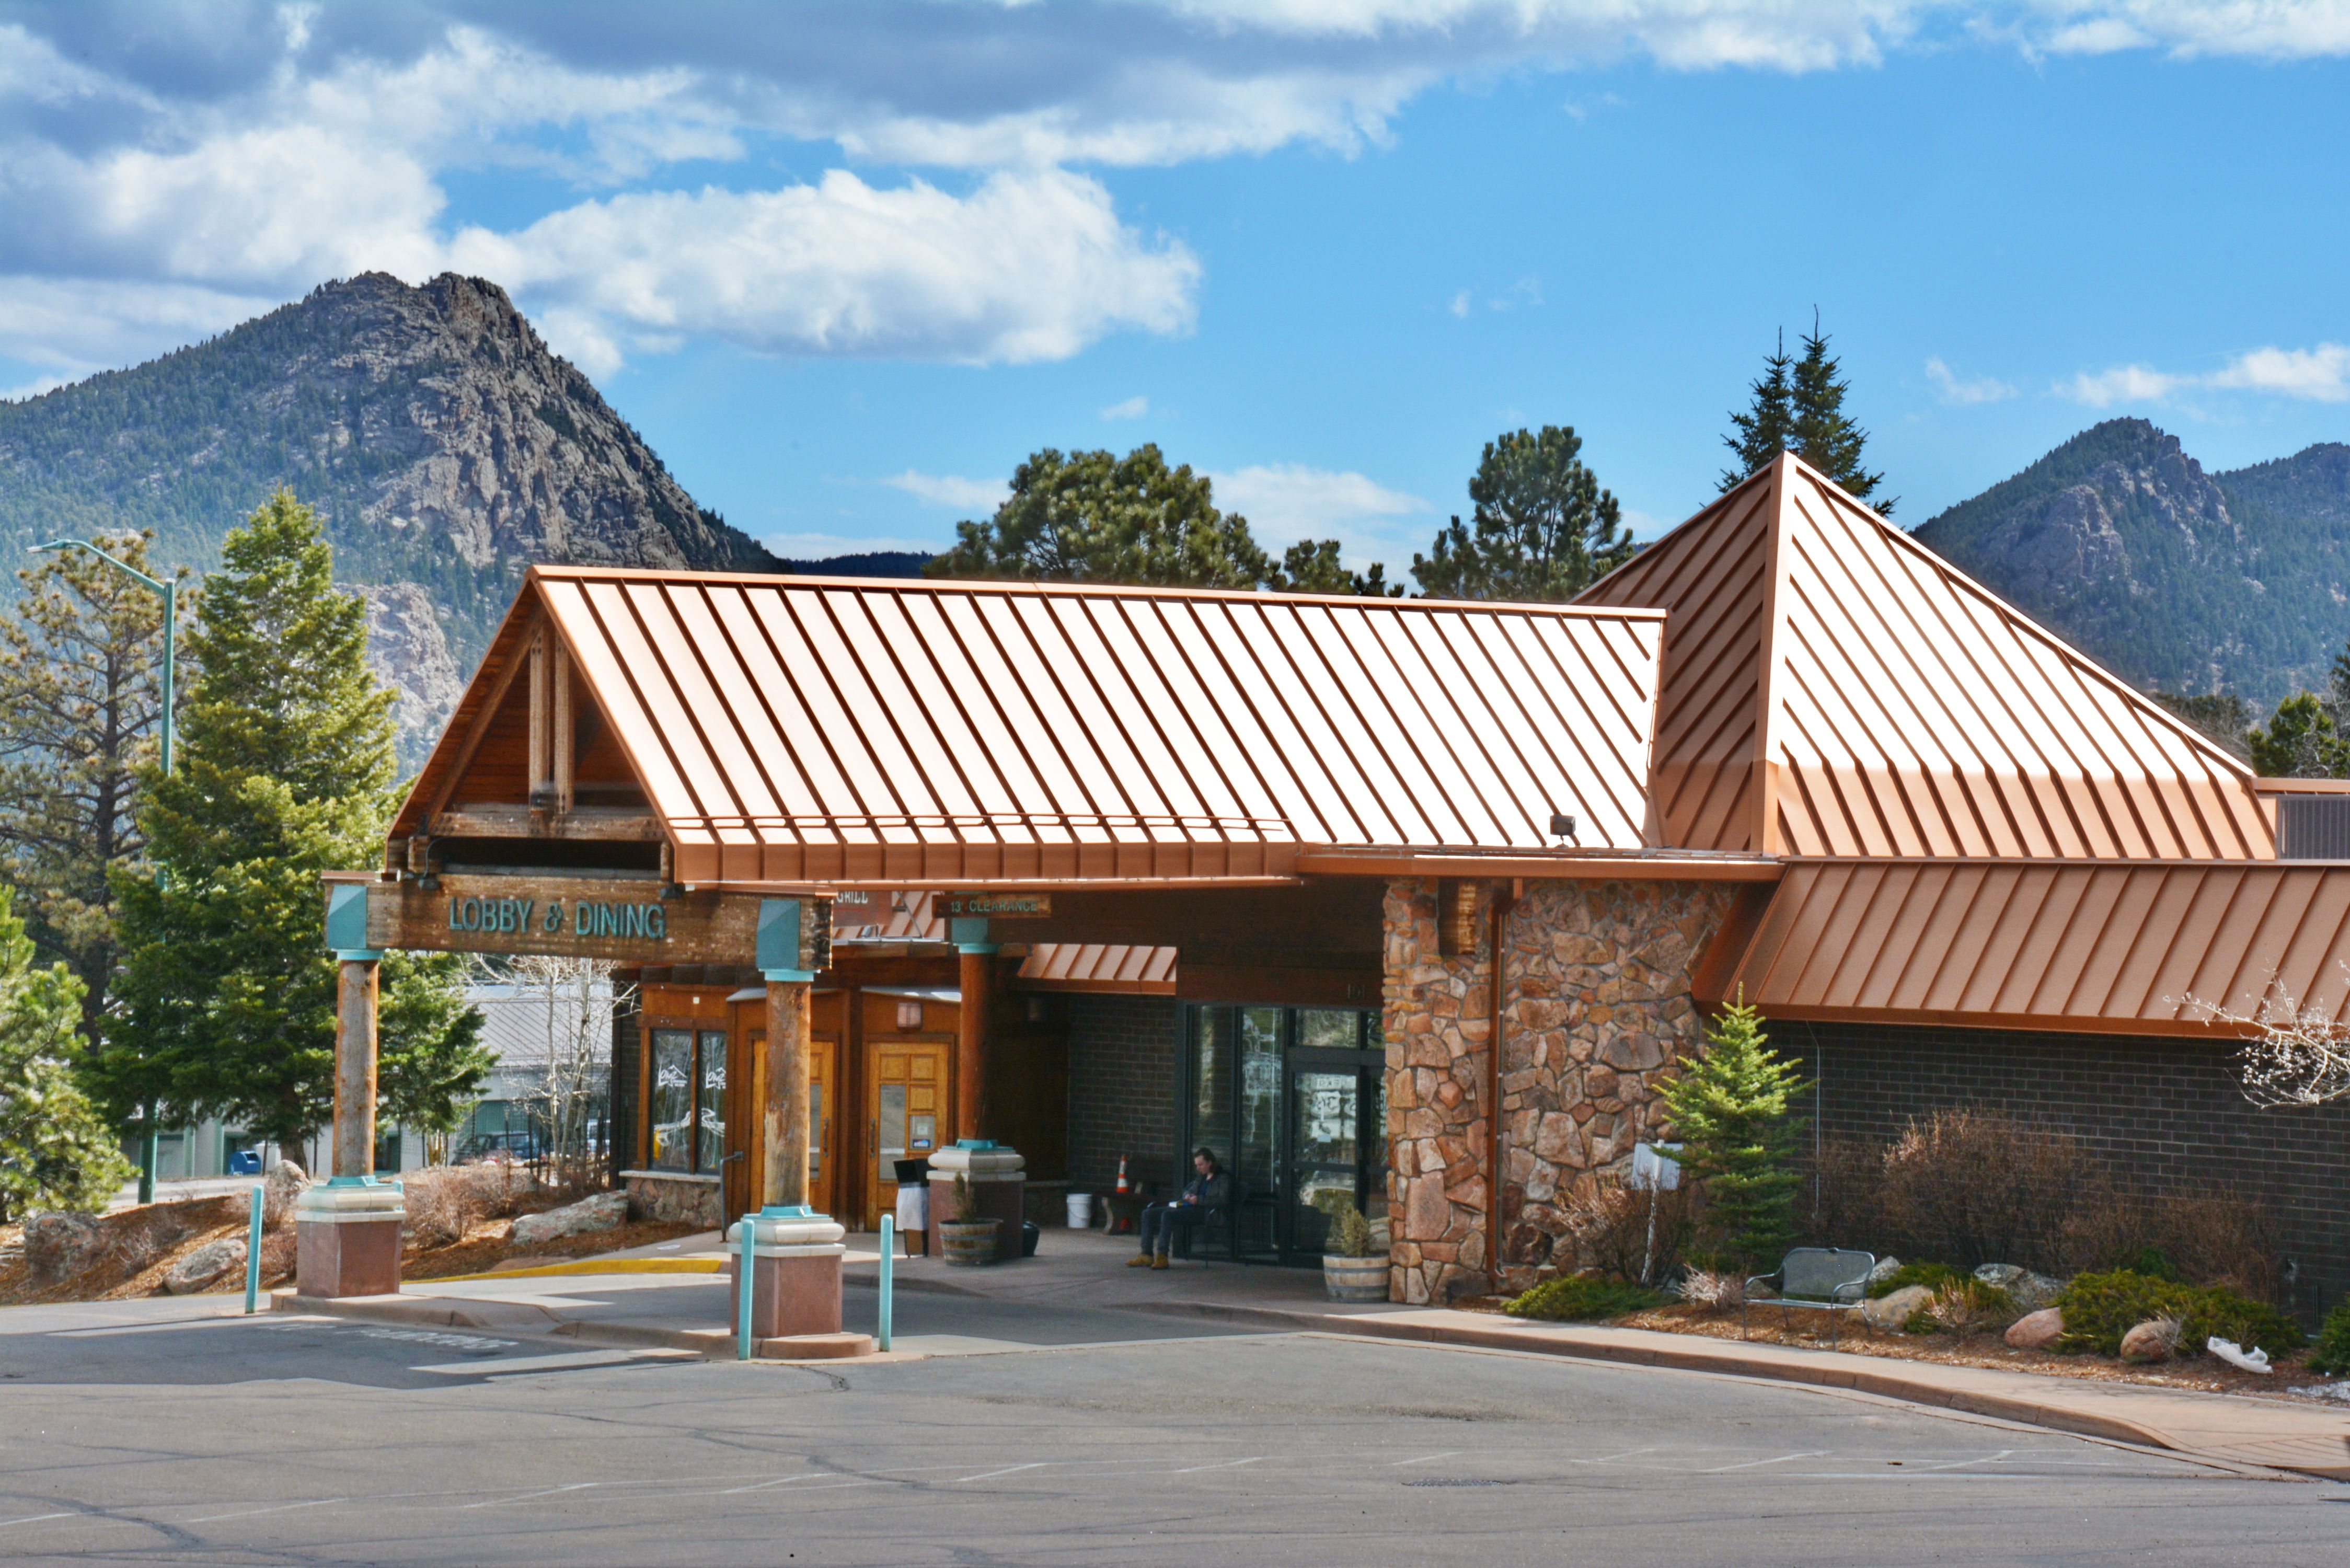 Delaware North Acquires Rocky Mountain Park Inn And Trendz At The In Estes